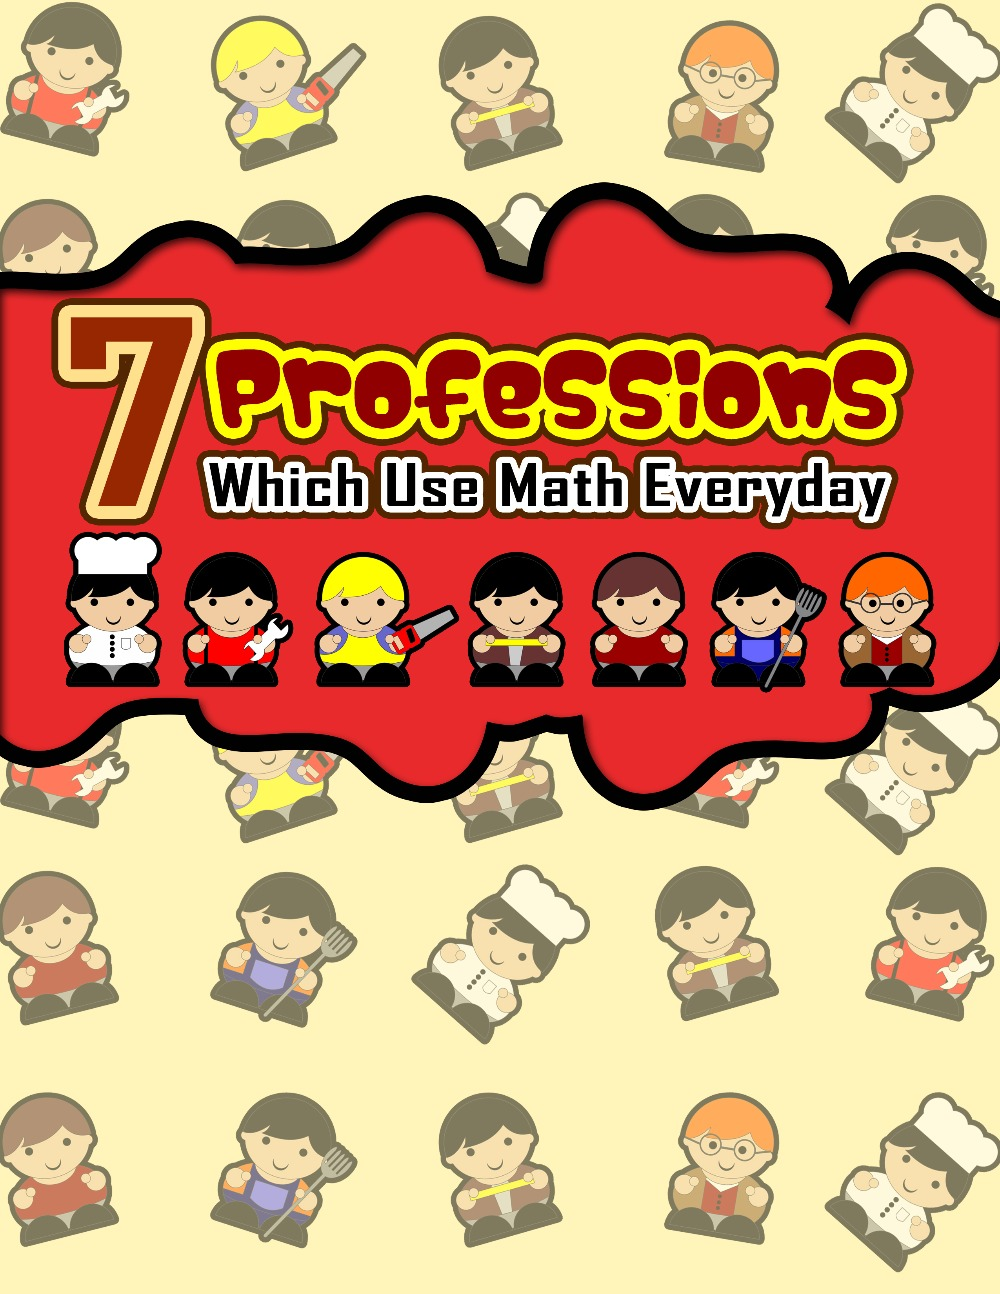 7 Professions Which Use Math Everyday